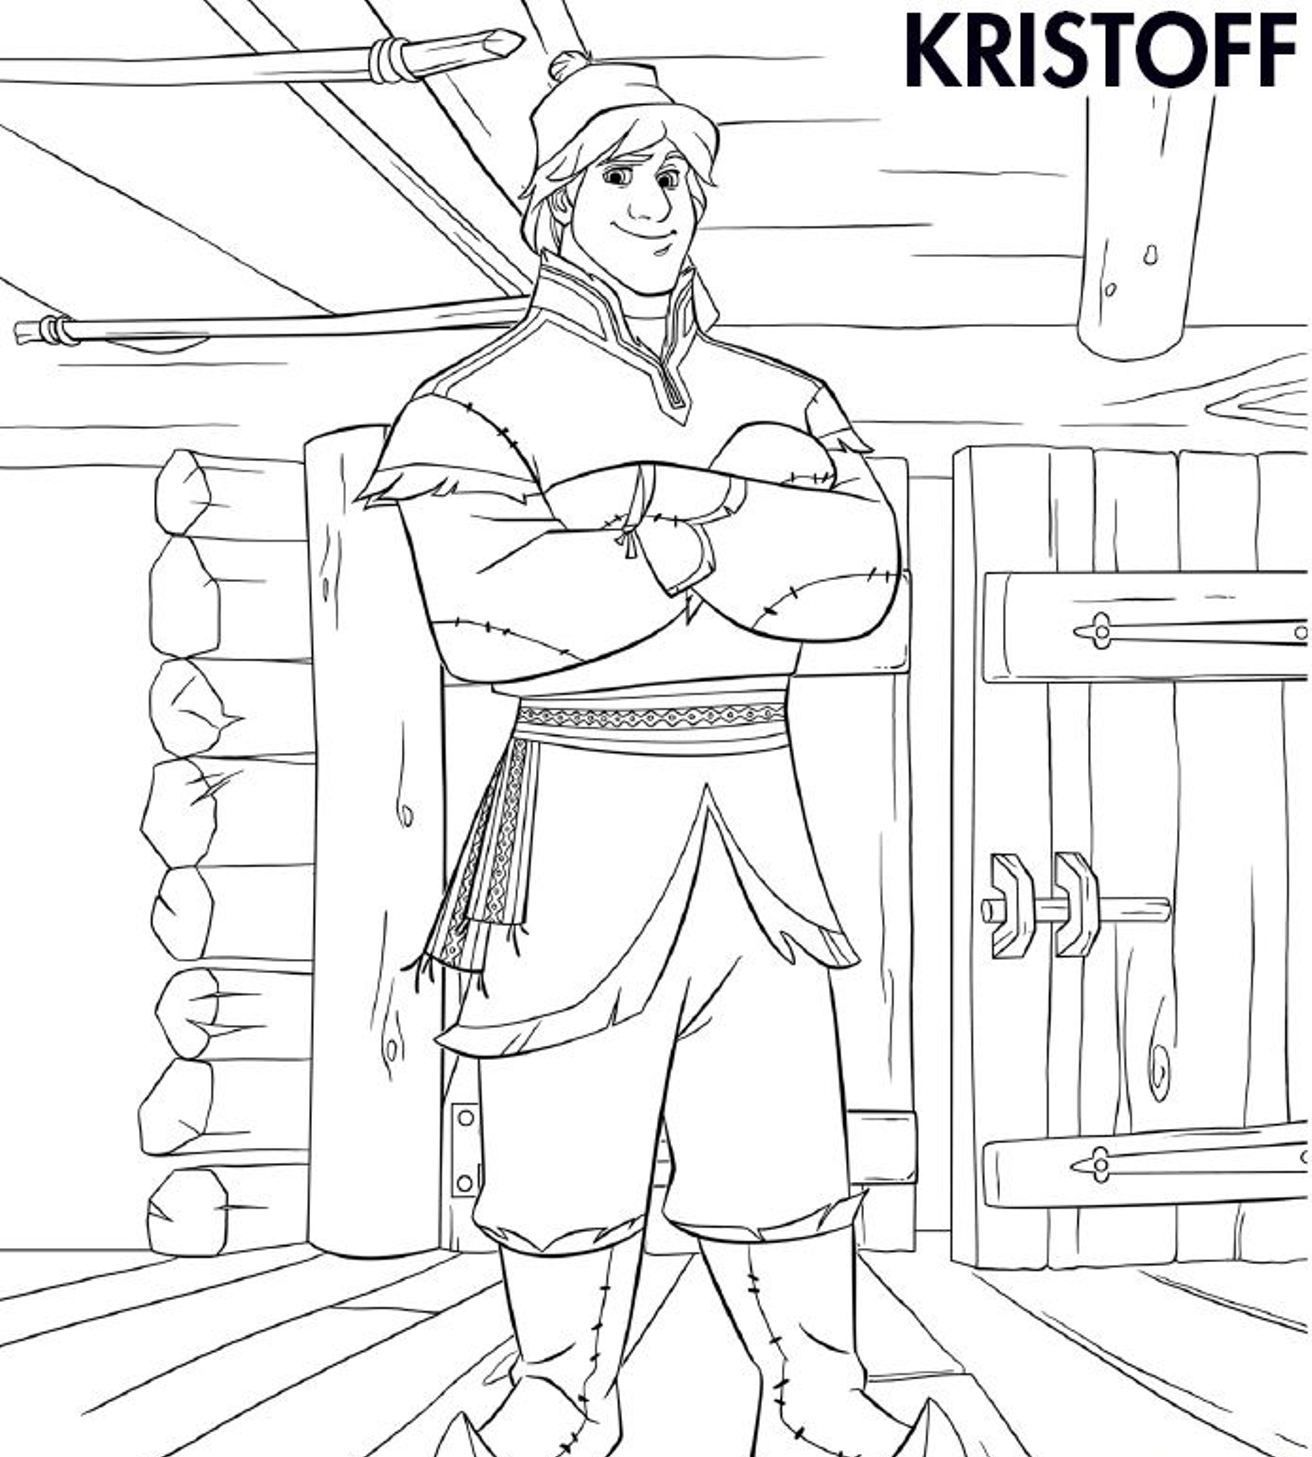 Frozen coloring pages kristoff - Kristoff Frozen Coloring Page Printable Frozen Party For Kids Pinterest Coloring Frozen Coloring Pages And Frozen